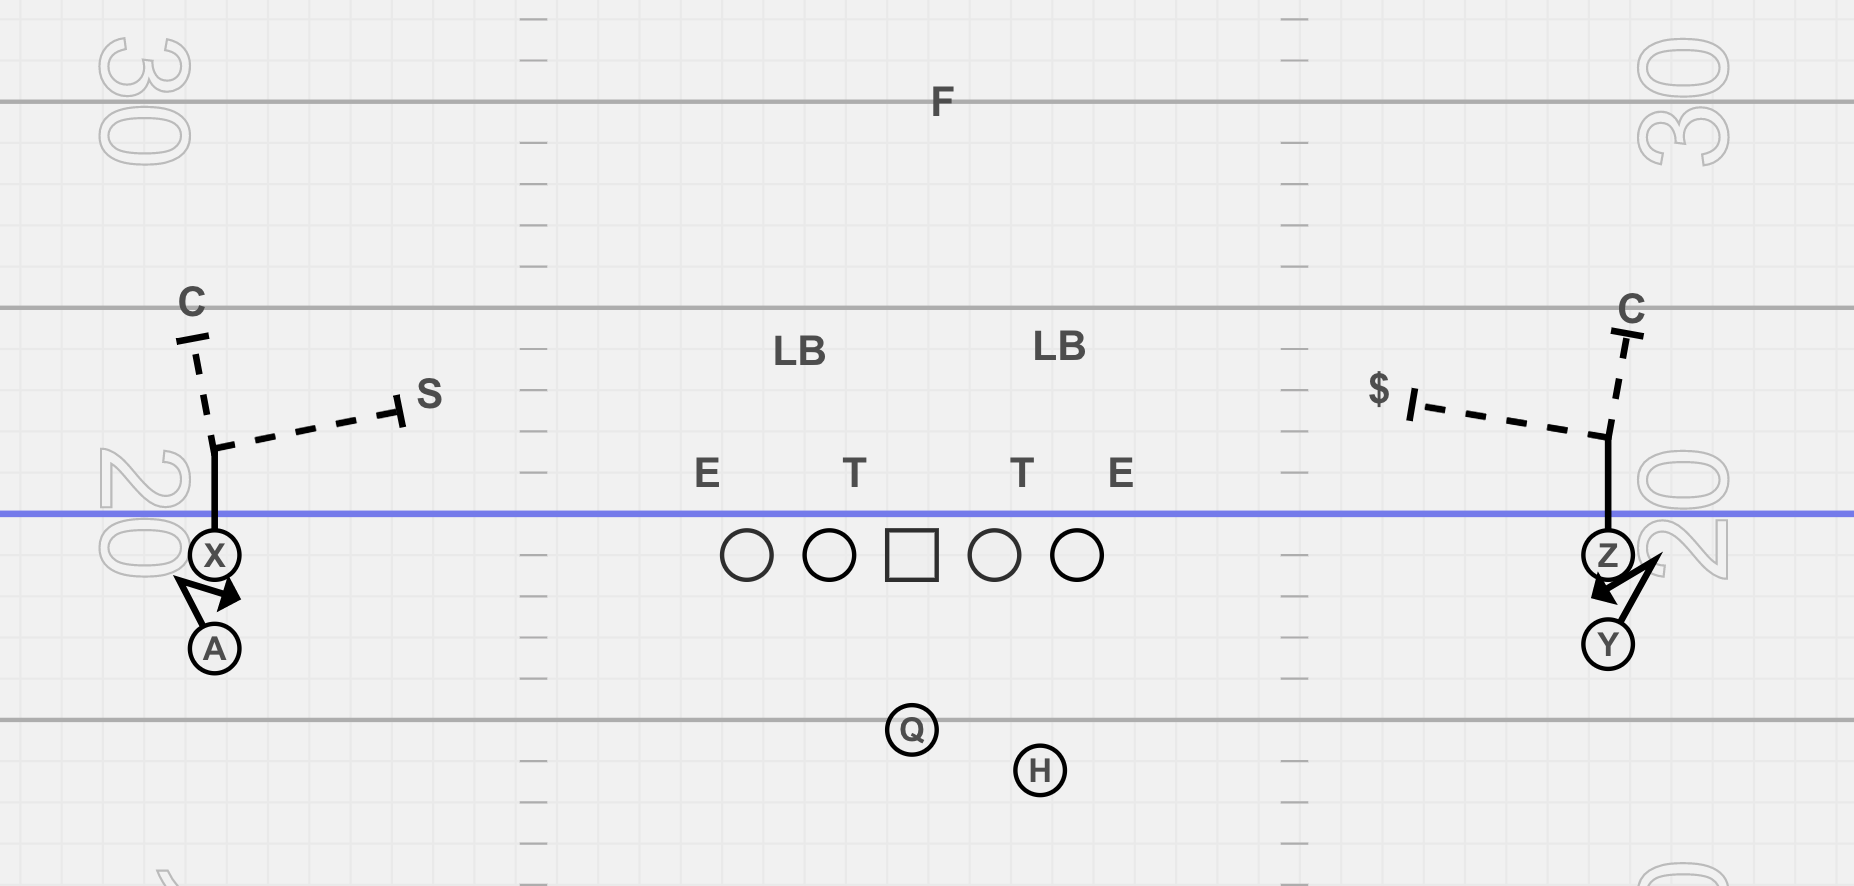 stack formation quick screen in the spread offense